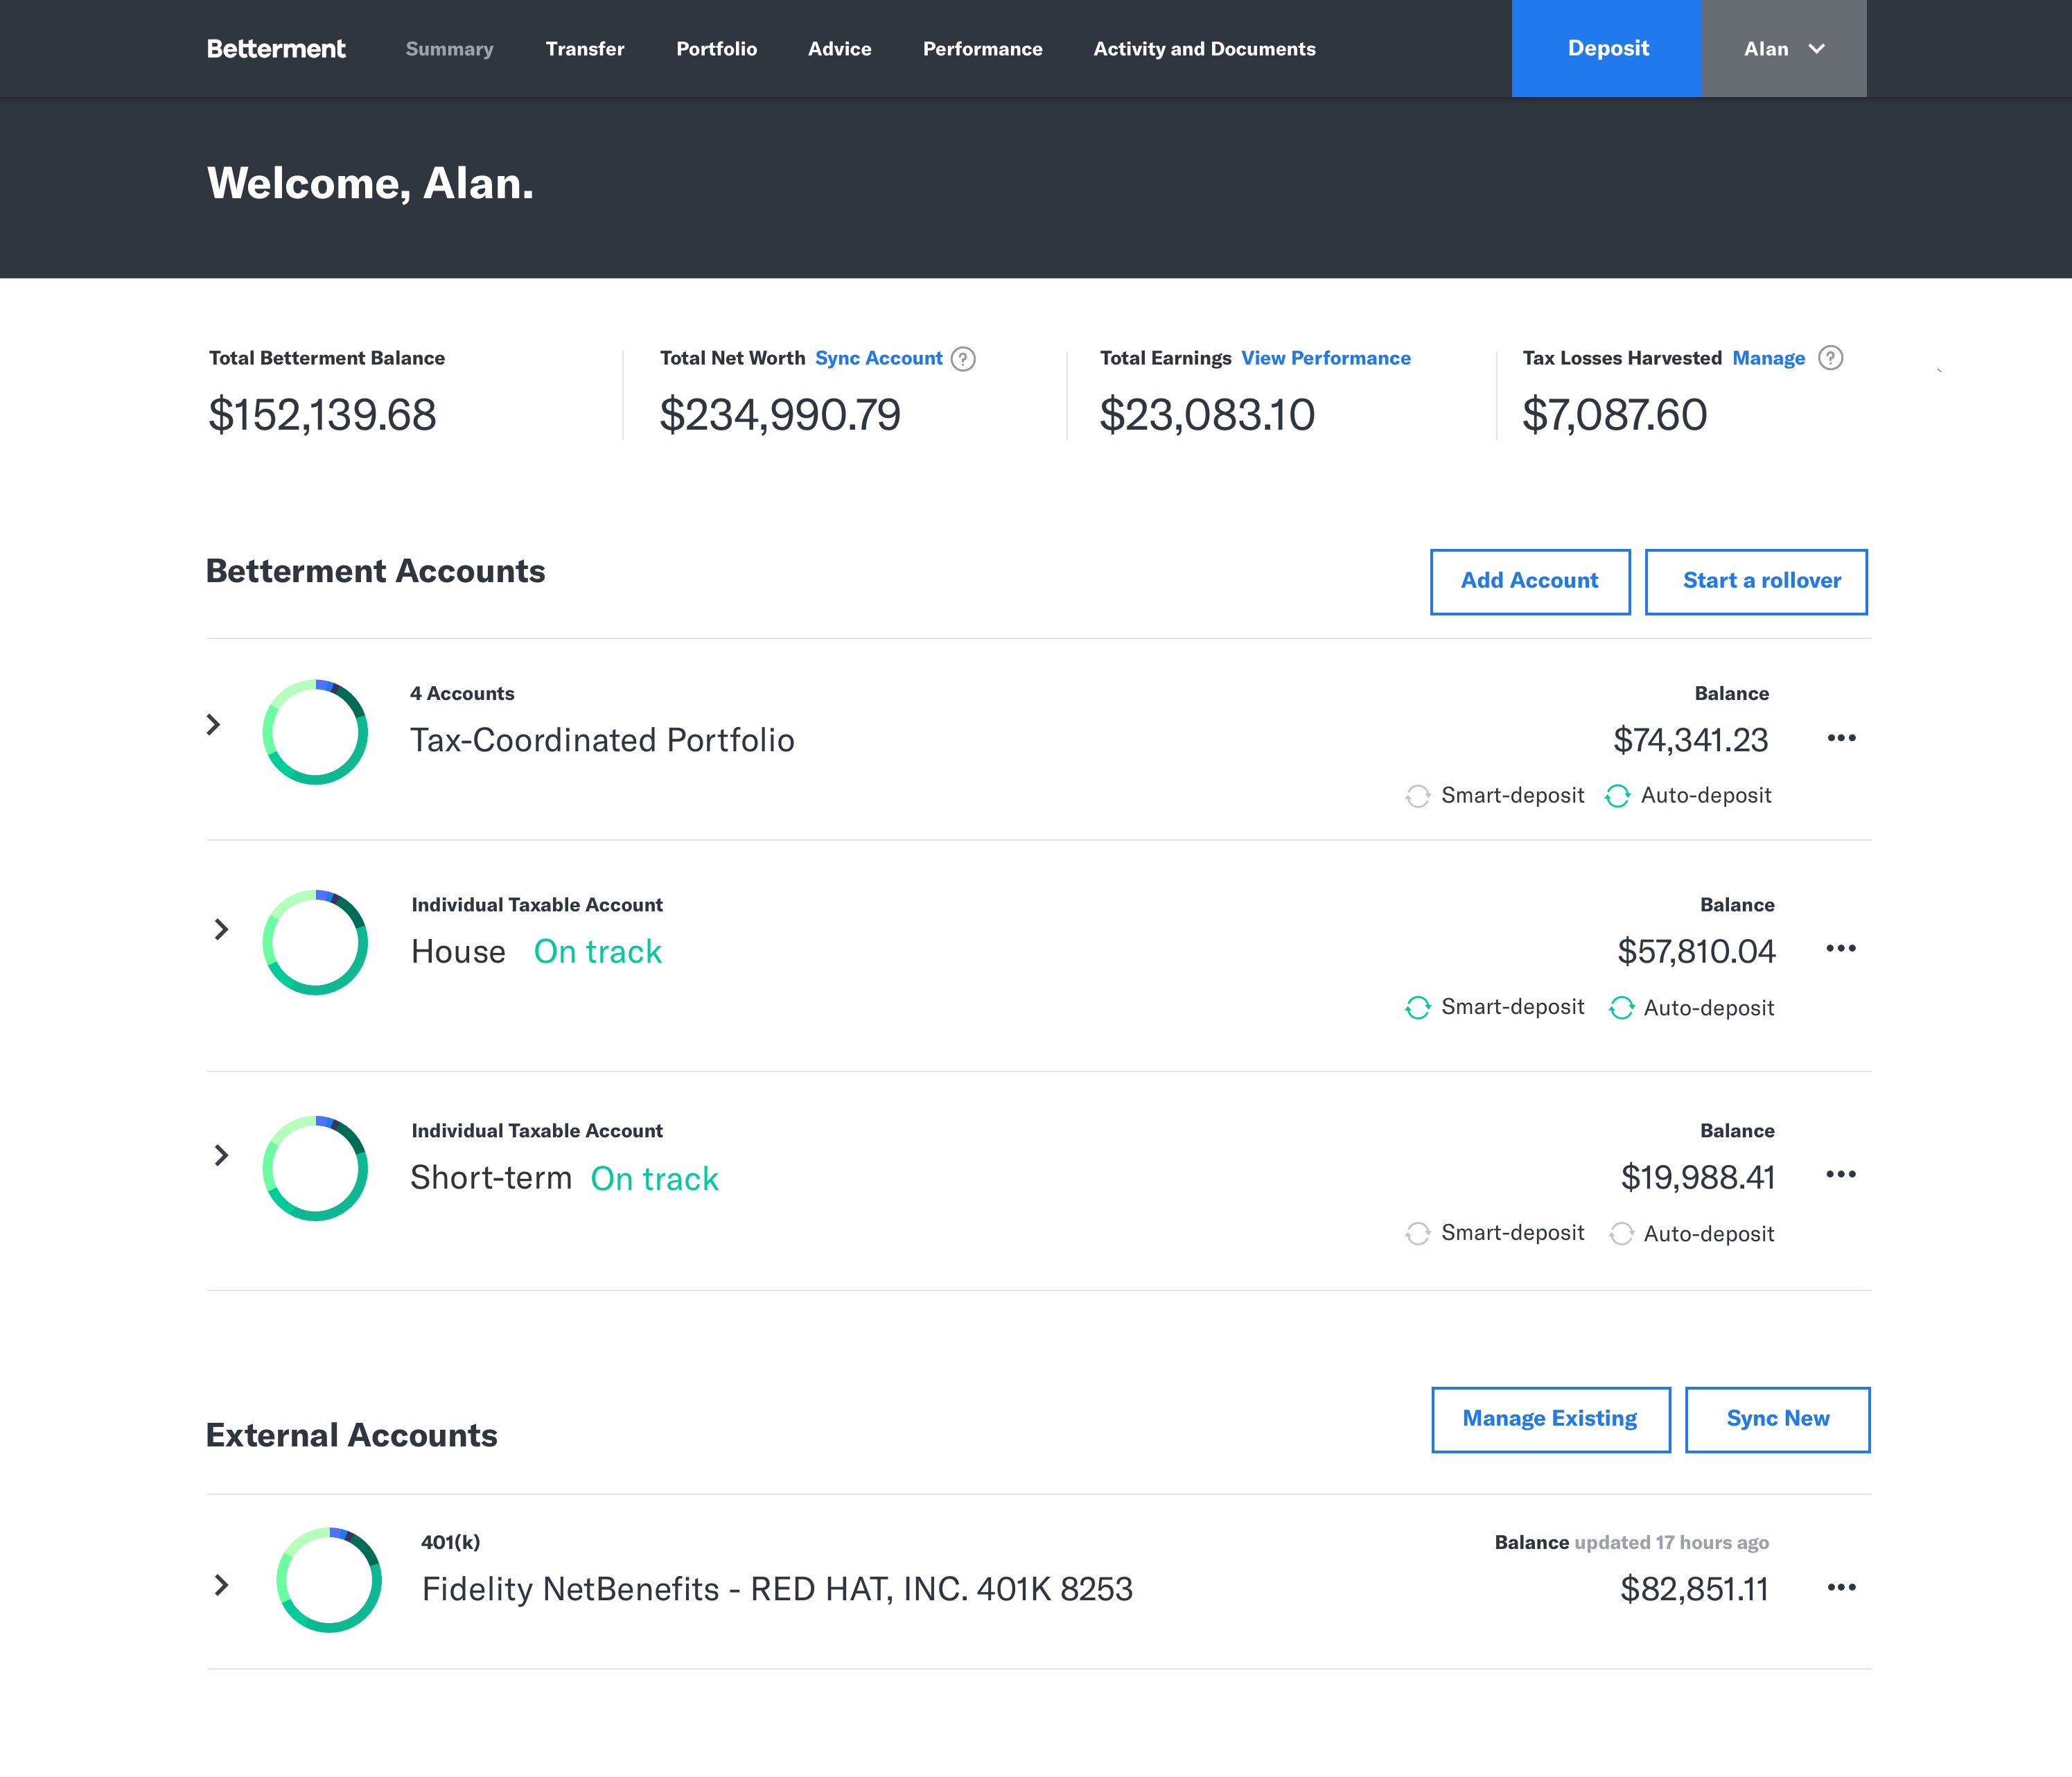 Betterment Summary Page Preview